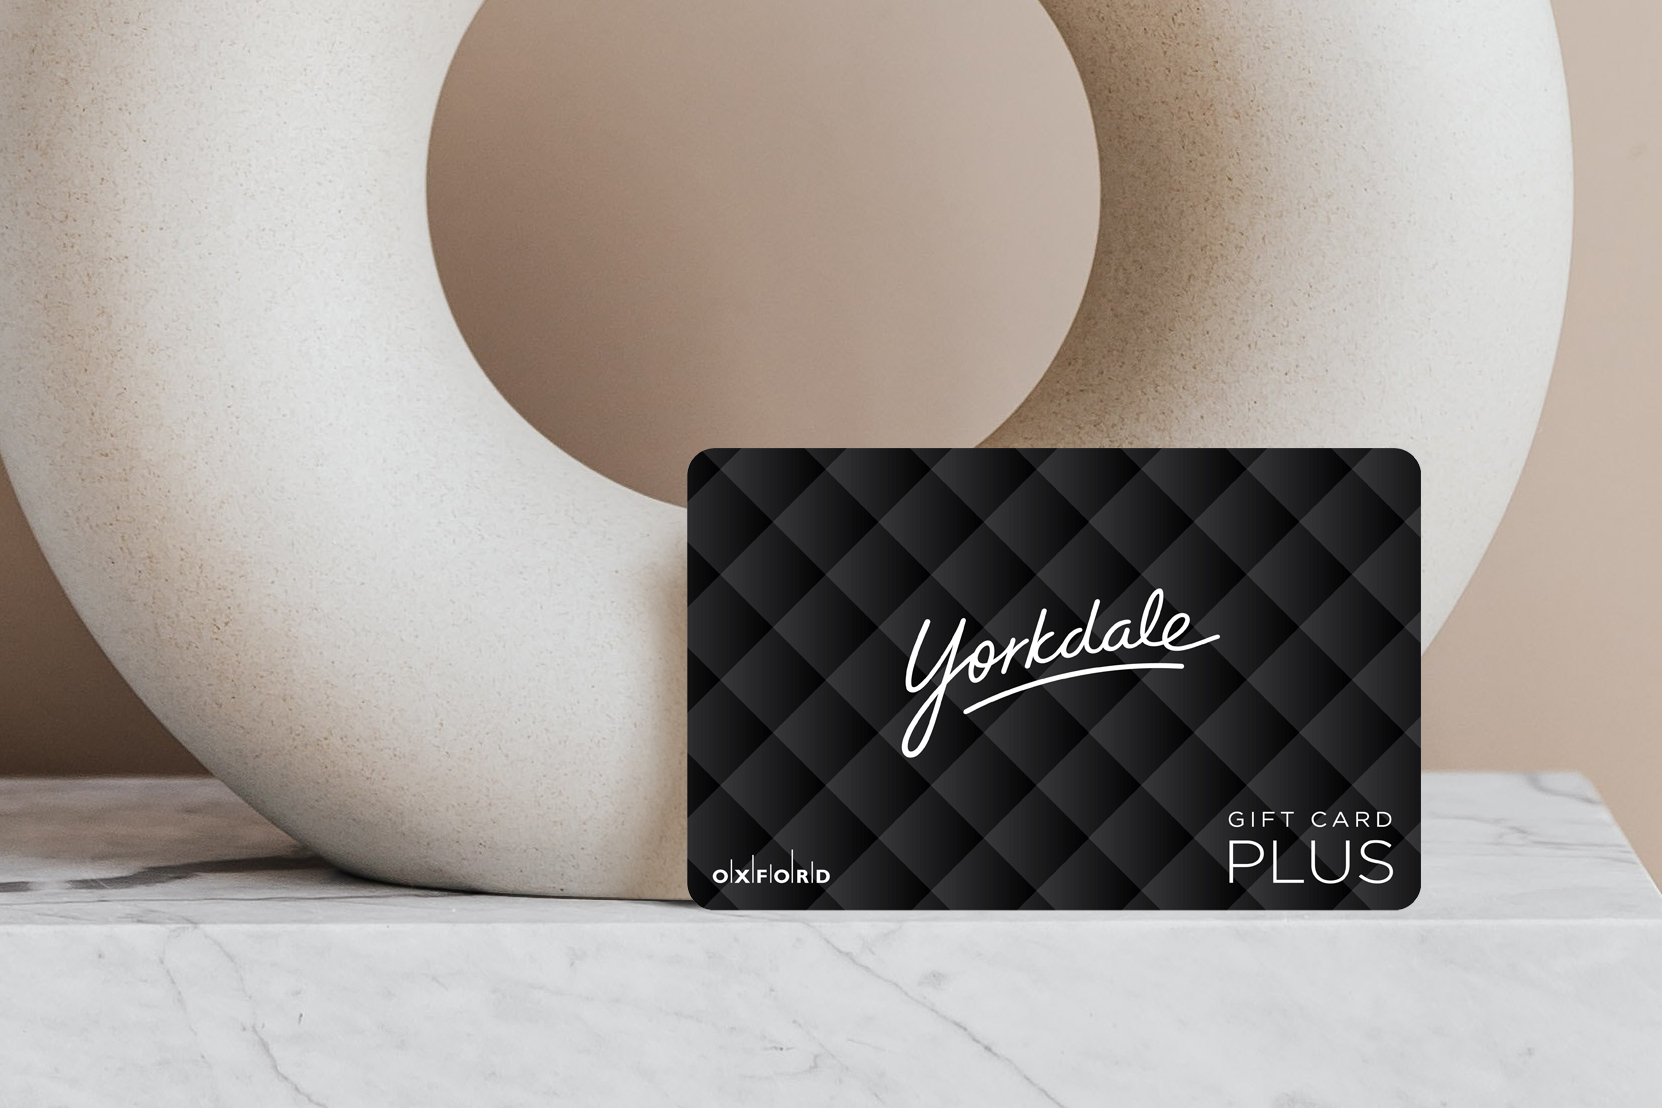 Yorkdale gift card